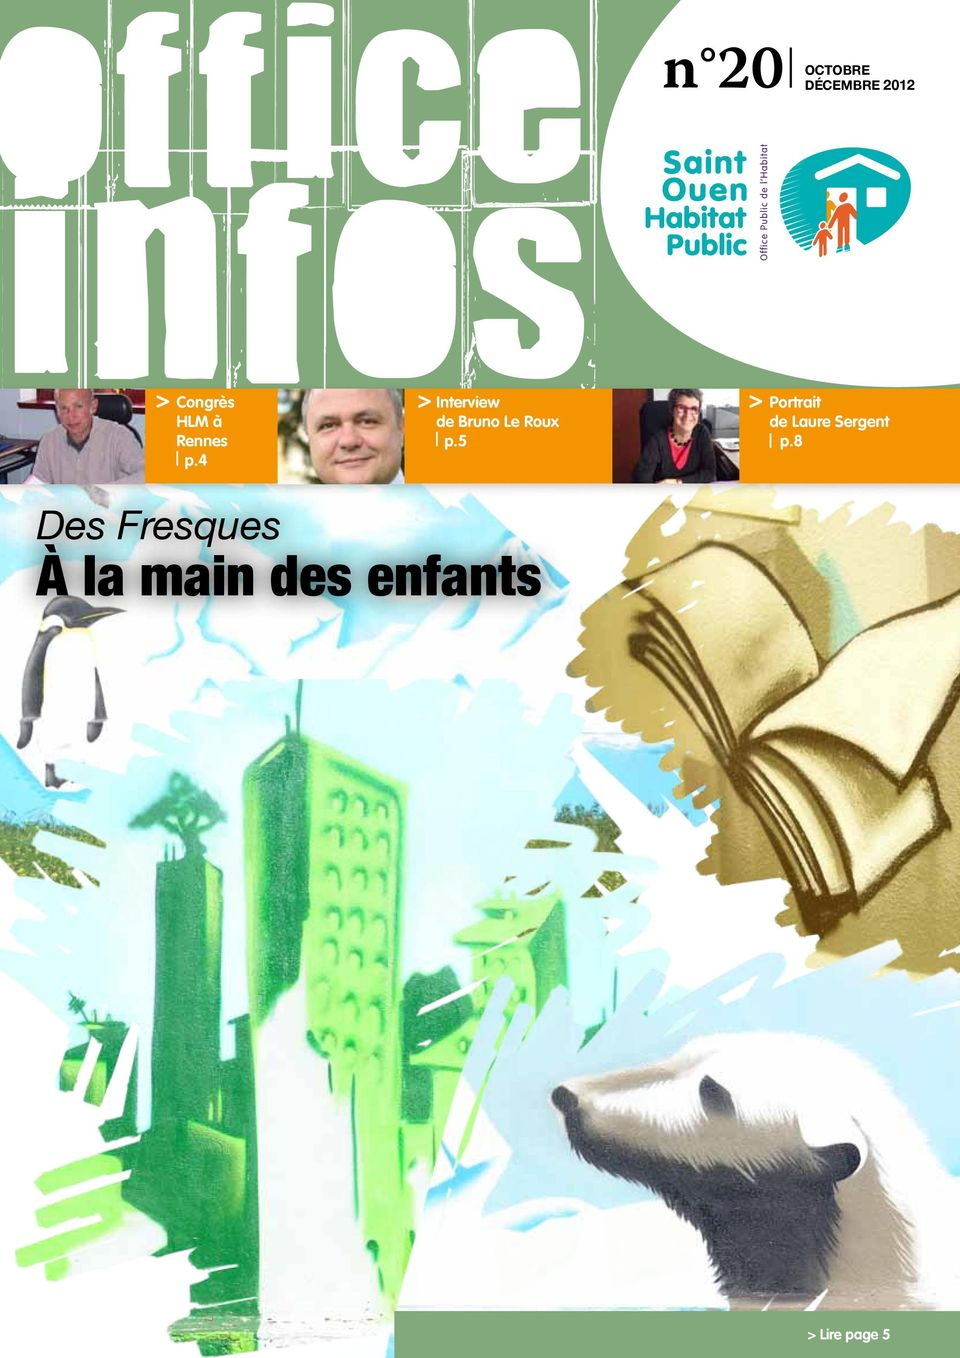 4 > Interview de Bruno Le Roux p.